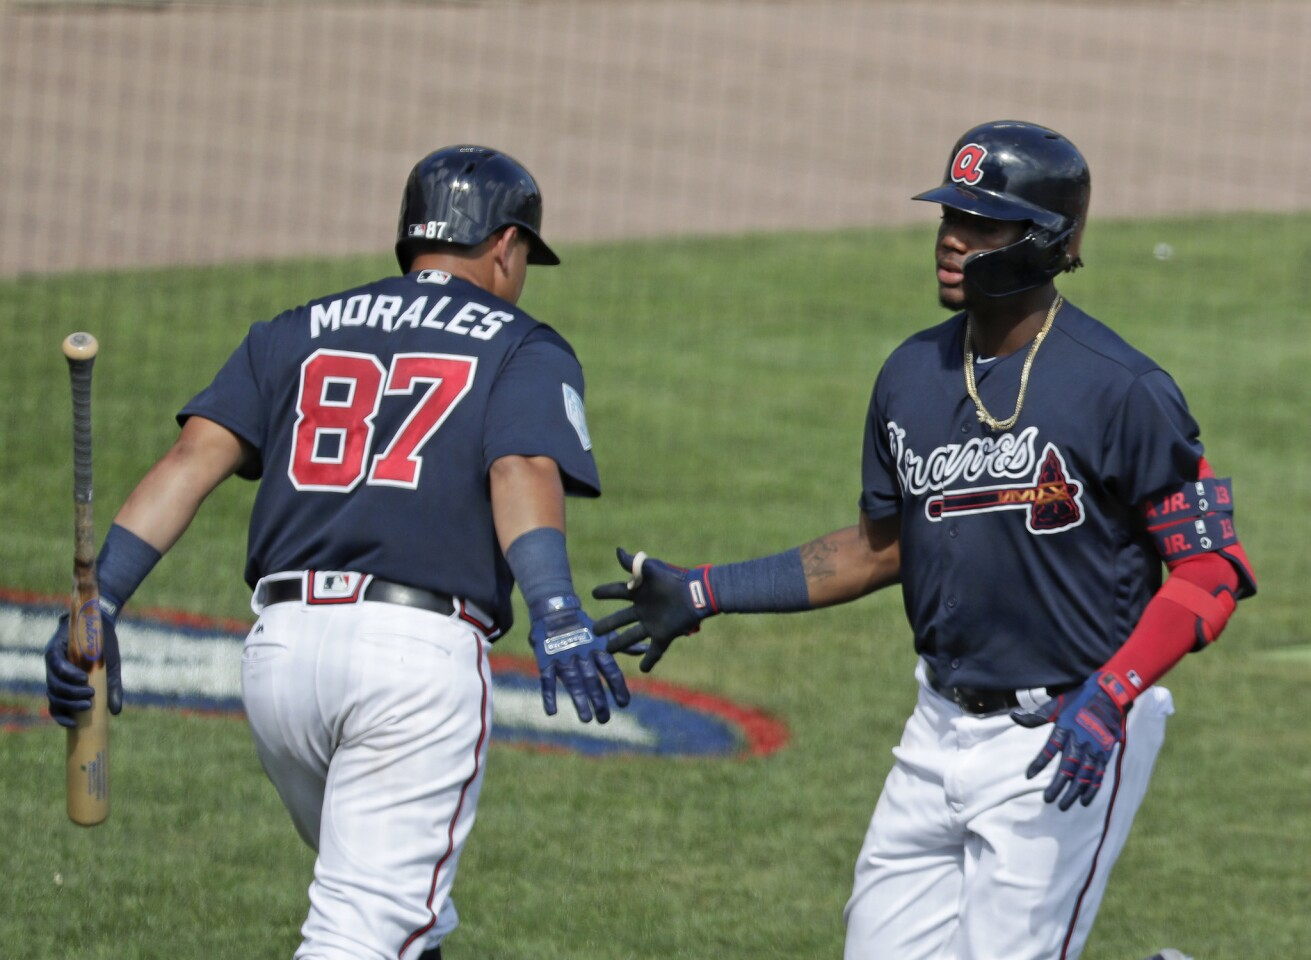 Atlanta Braves' Jonathan Morales, left, congratulates teammate Ronald Acuna Jr., right, on his sixth inning home run against the Houston Astros in a spring baseball exhibition game, Monday, March 4, 2019, in Kissimmee, Fla. (AP Photo/John Raoux)